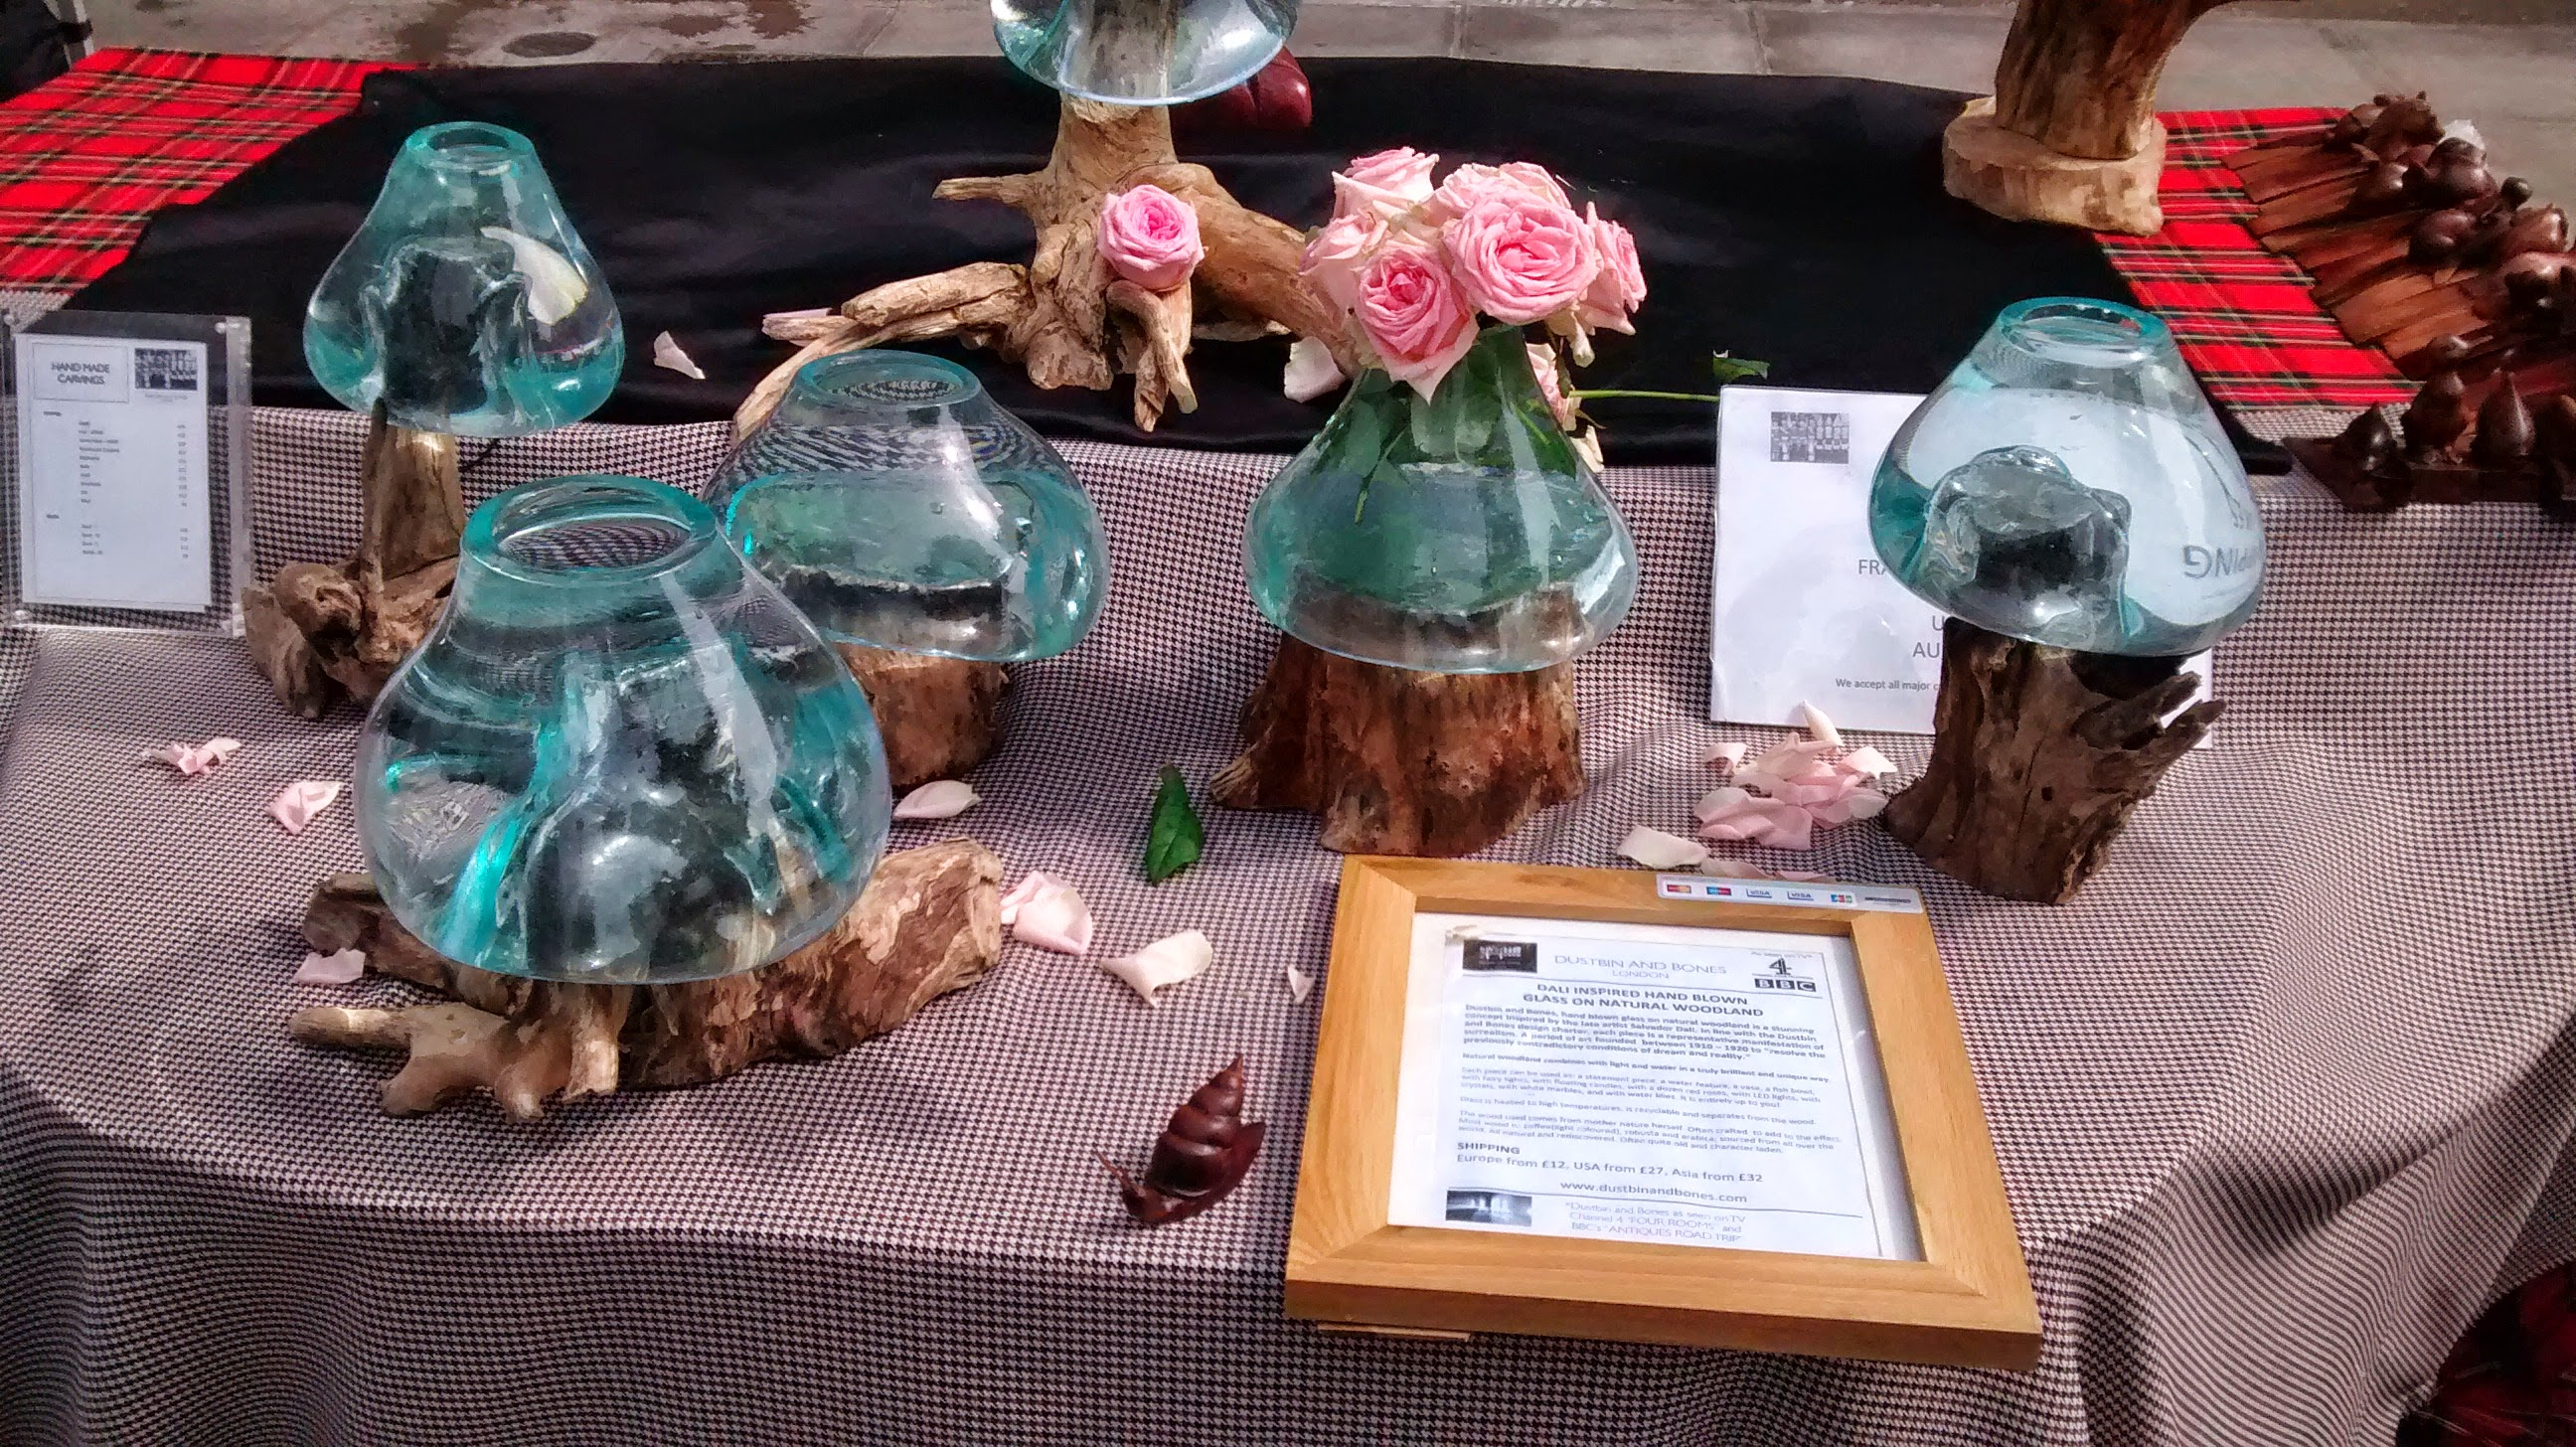 Dalie glass art at one of our stalls